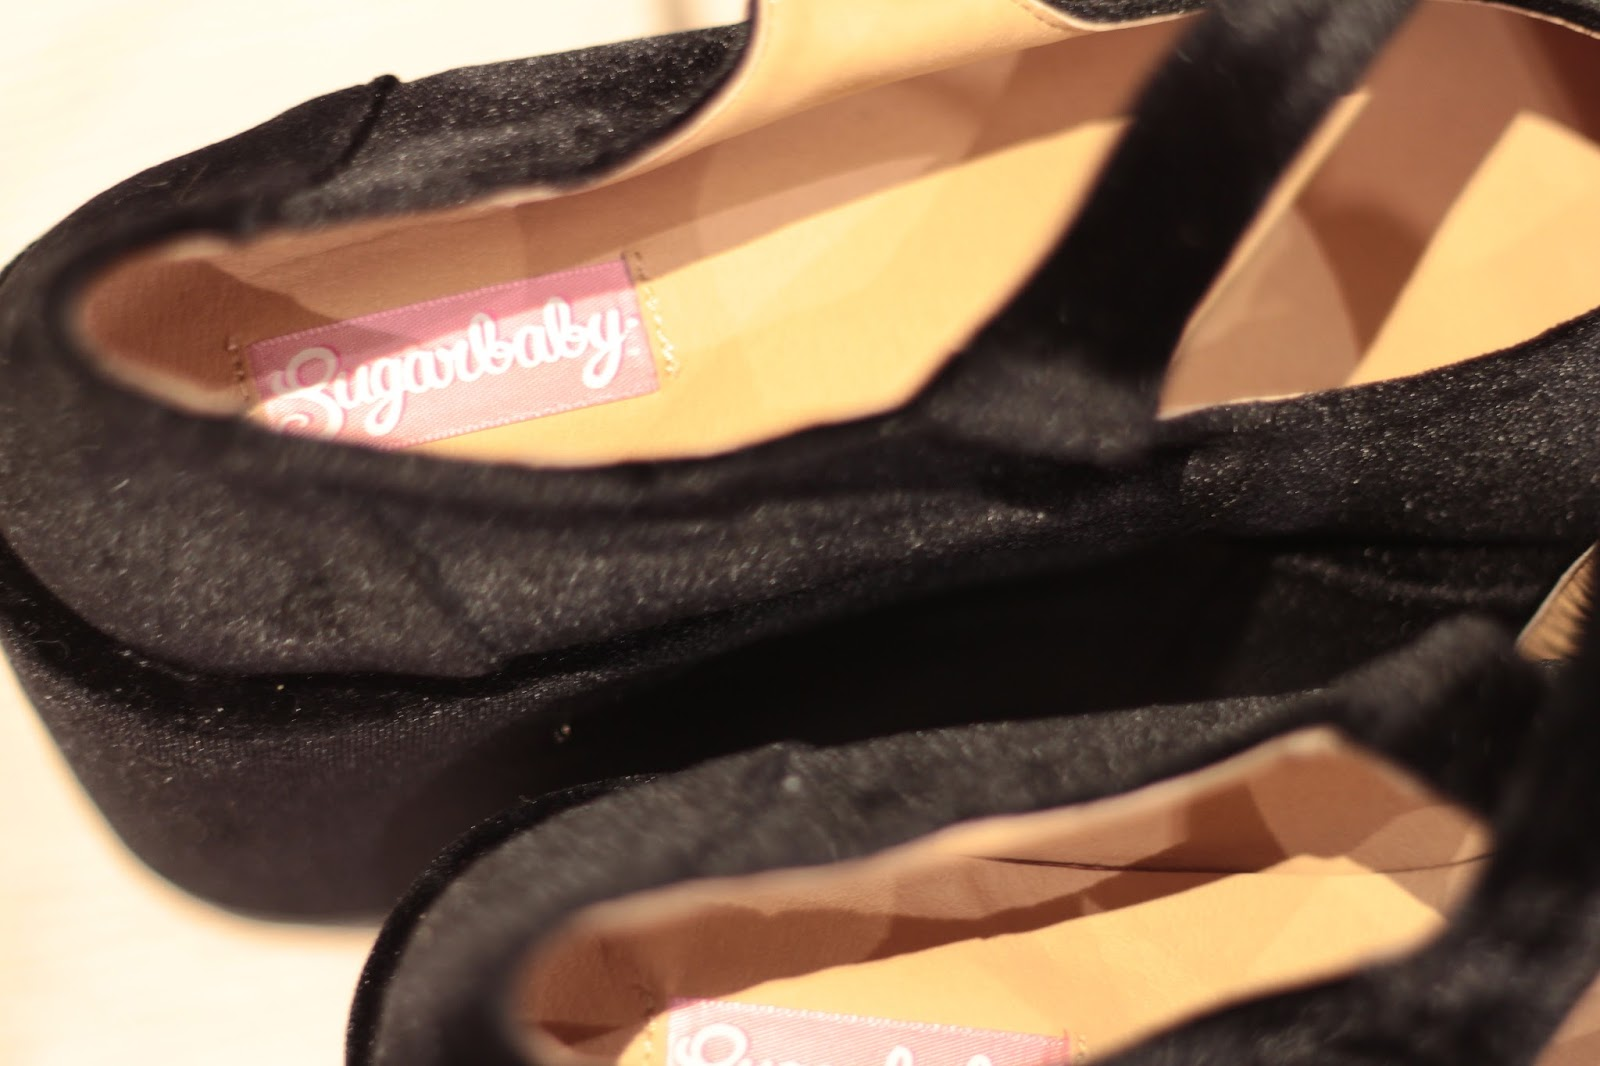 sugarbaby ballet boppers noire review